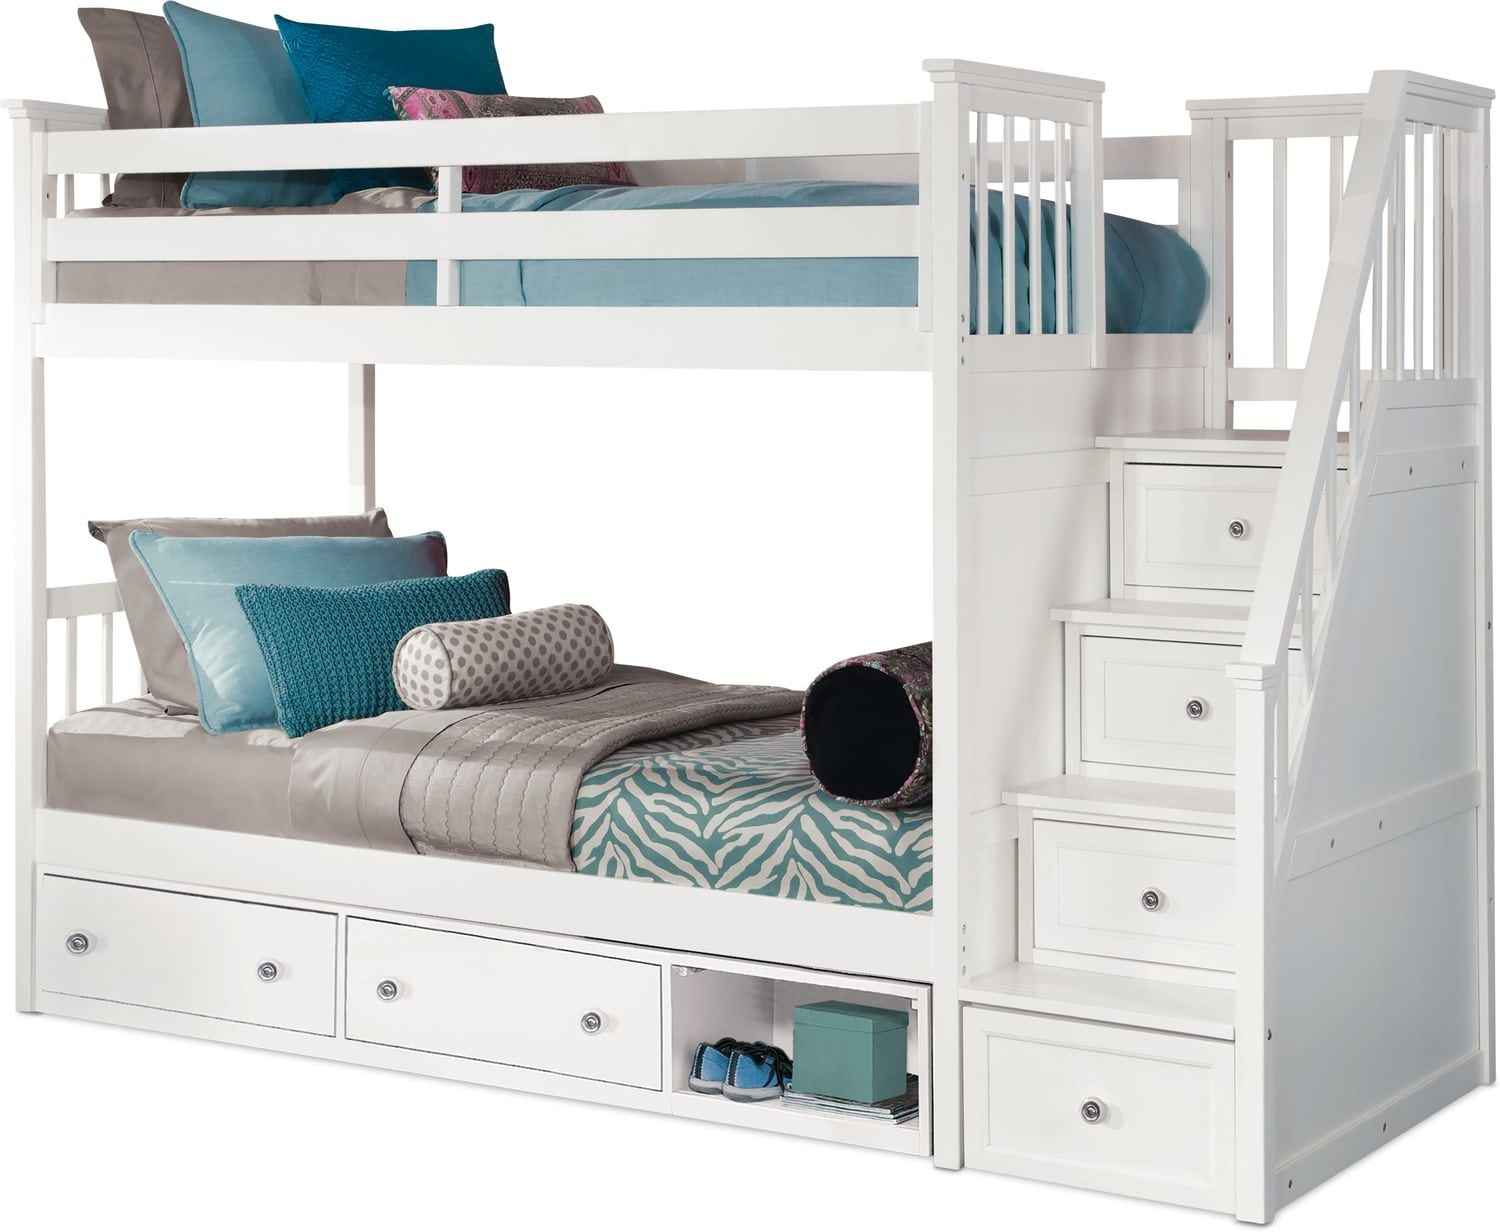 Bed Over Stair Box With Storage And Stairs: Flynn Storage Bunk Bed With Storage Stairs